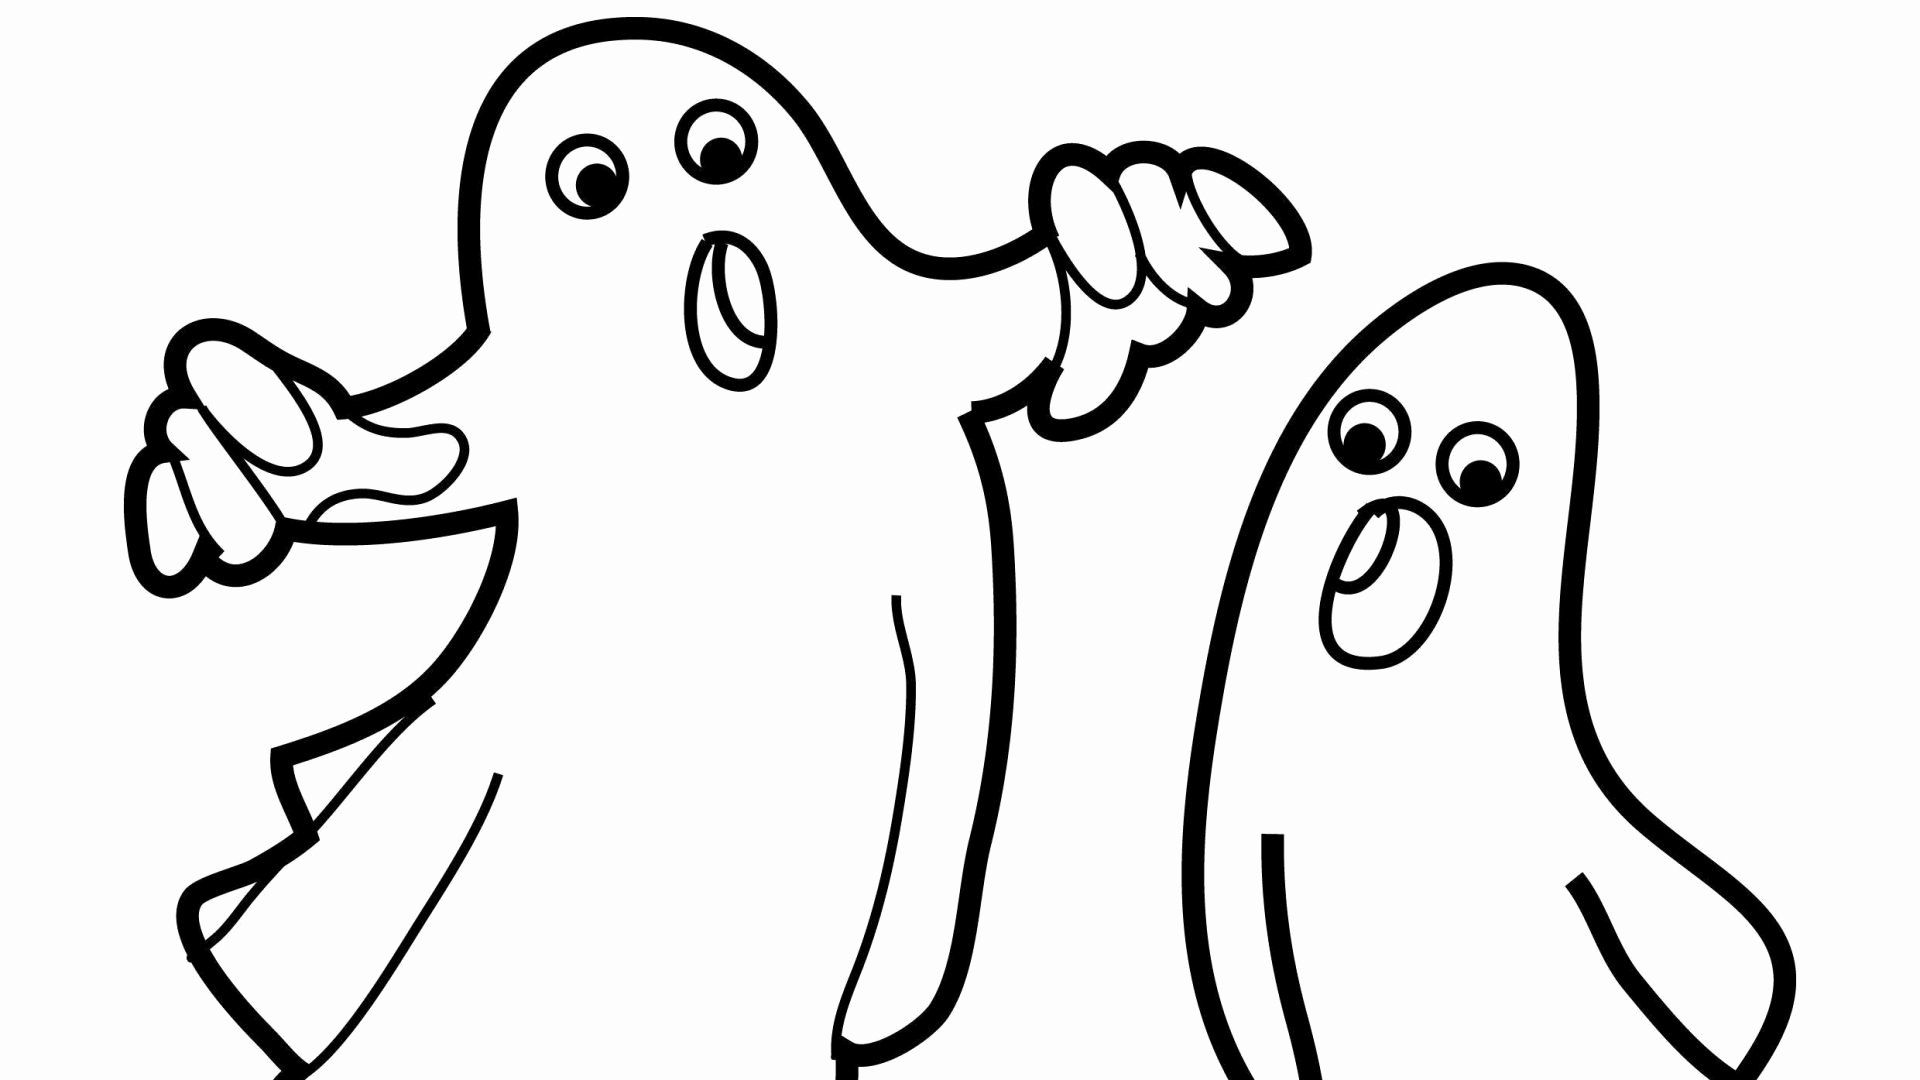 Ghost Printable Coloring Pages Lovely Coloring Pages Halloween Ghost At Getdrawin Pumpkin Coloring Pages Preschool Coloring Pages Free Printable Coloring Pages